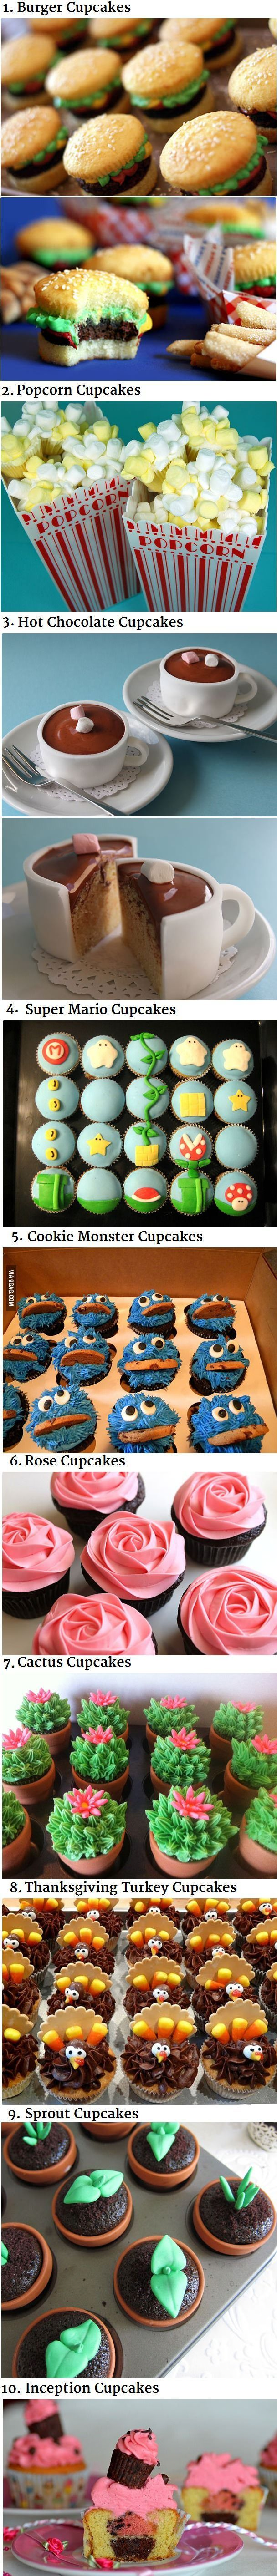 10 Awesome Cupcake Decorating Ideas - I had to wipe away the drool before I pinned this!